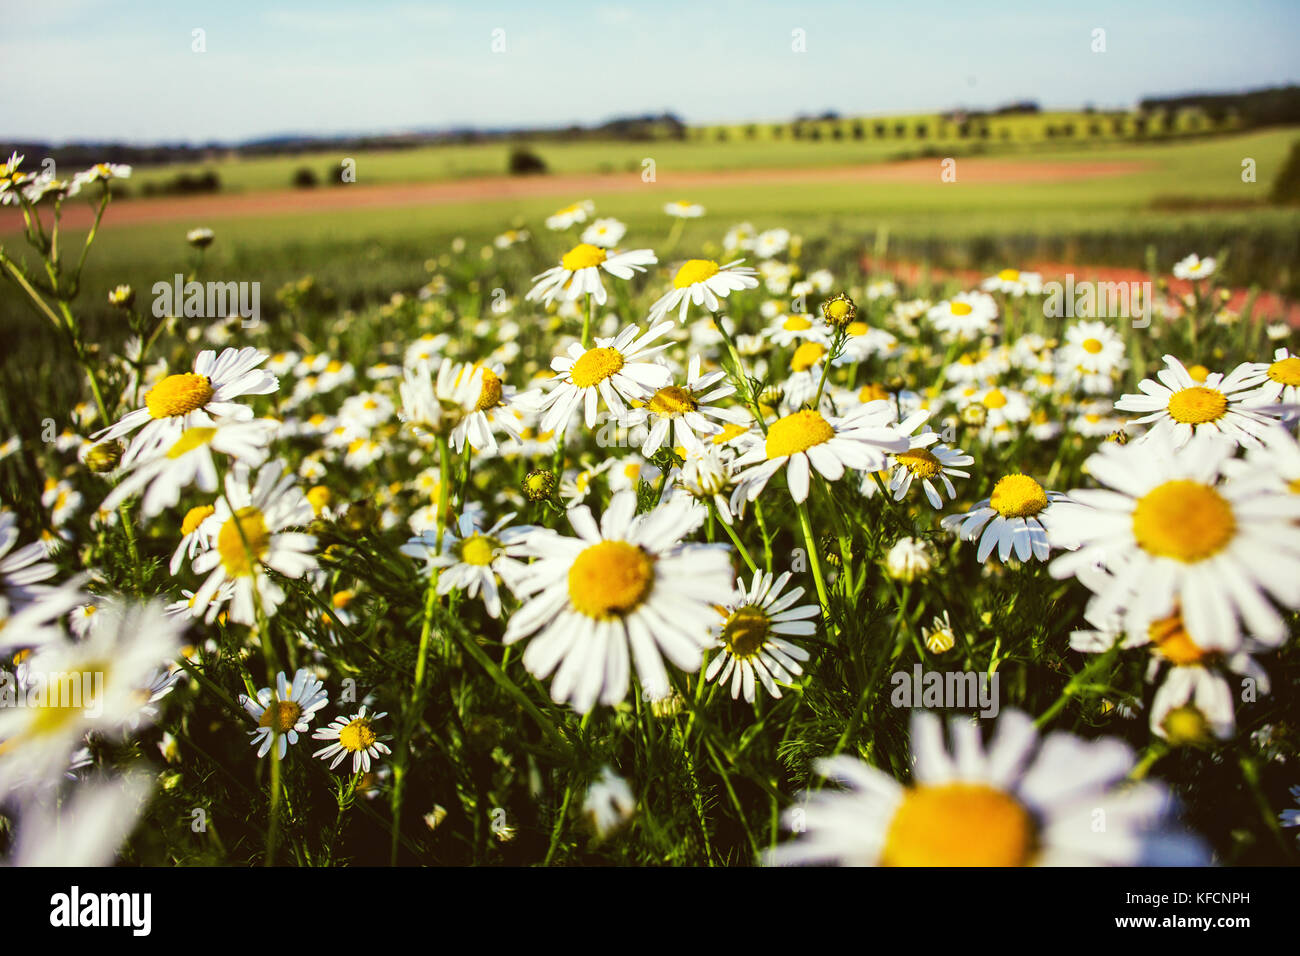 Oxeye daisy (Ox-eye daisy) or Leucanthemum vulgare. Wildflowers growing in cultivated fields. Rural scene and nature - Stock Image